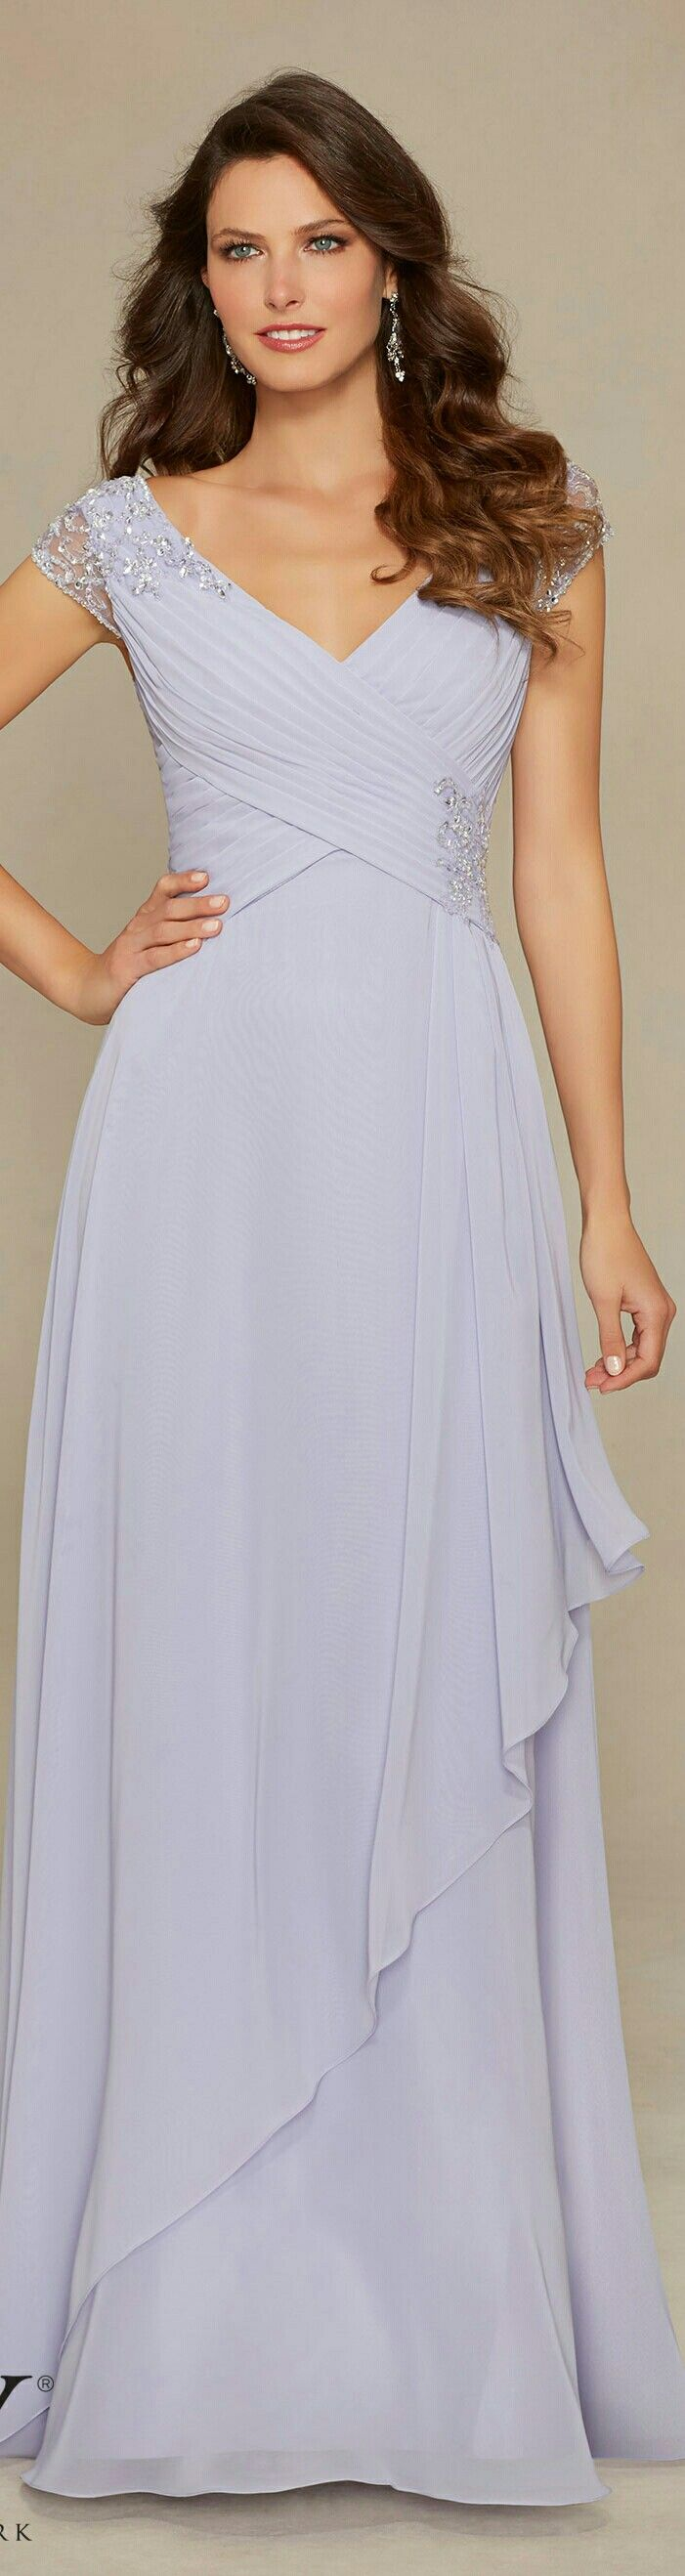 64 best homecoming dresses images on Pinterest | Party wear dresses ...